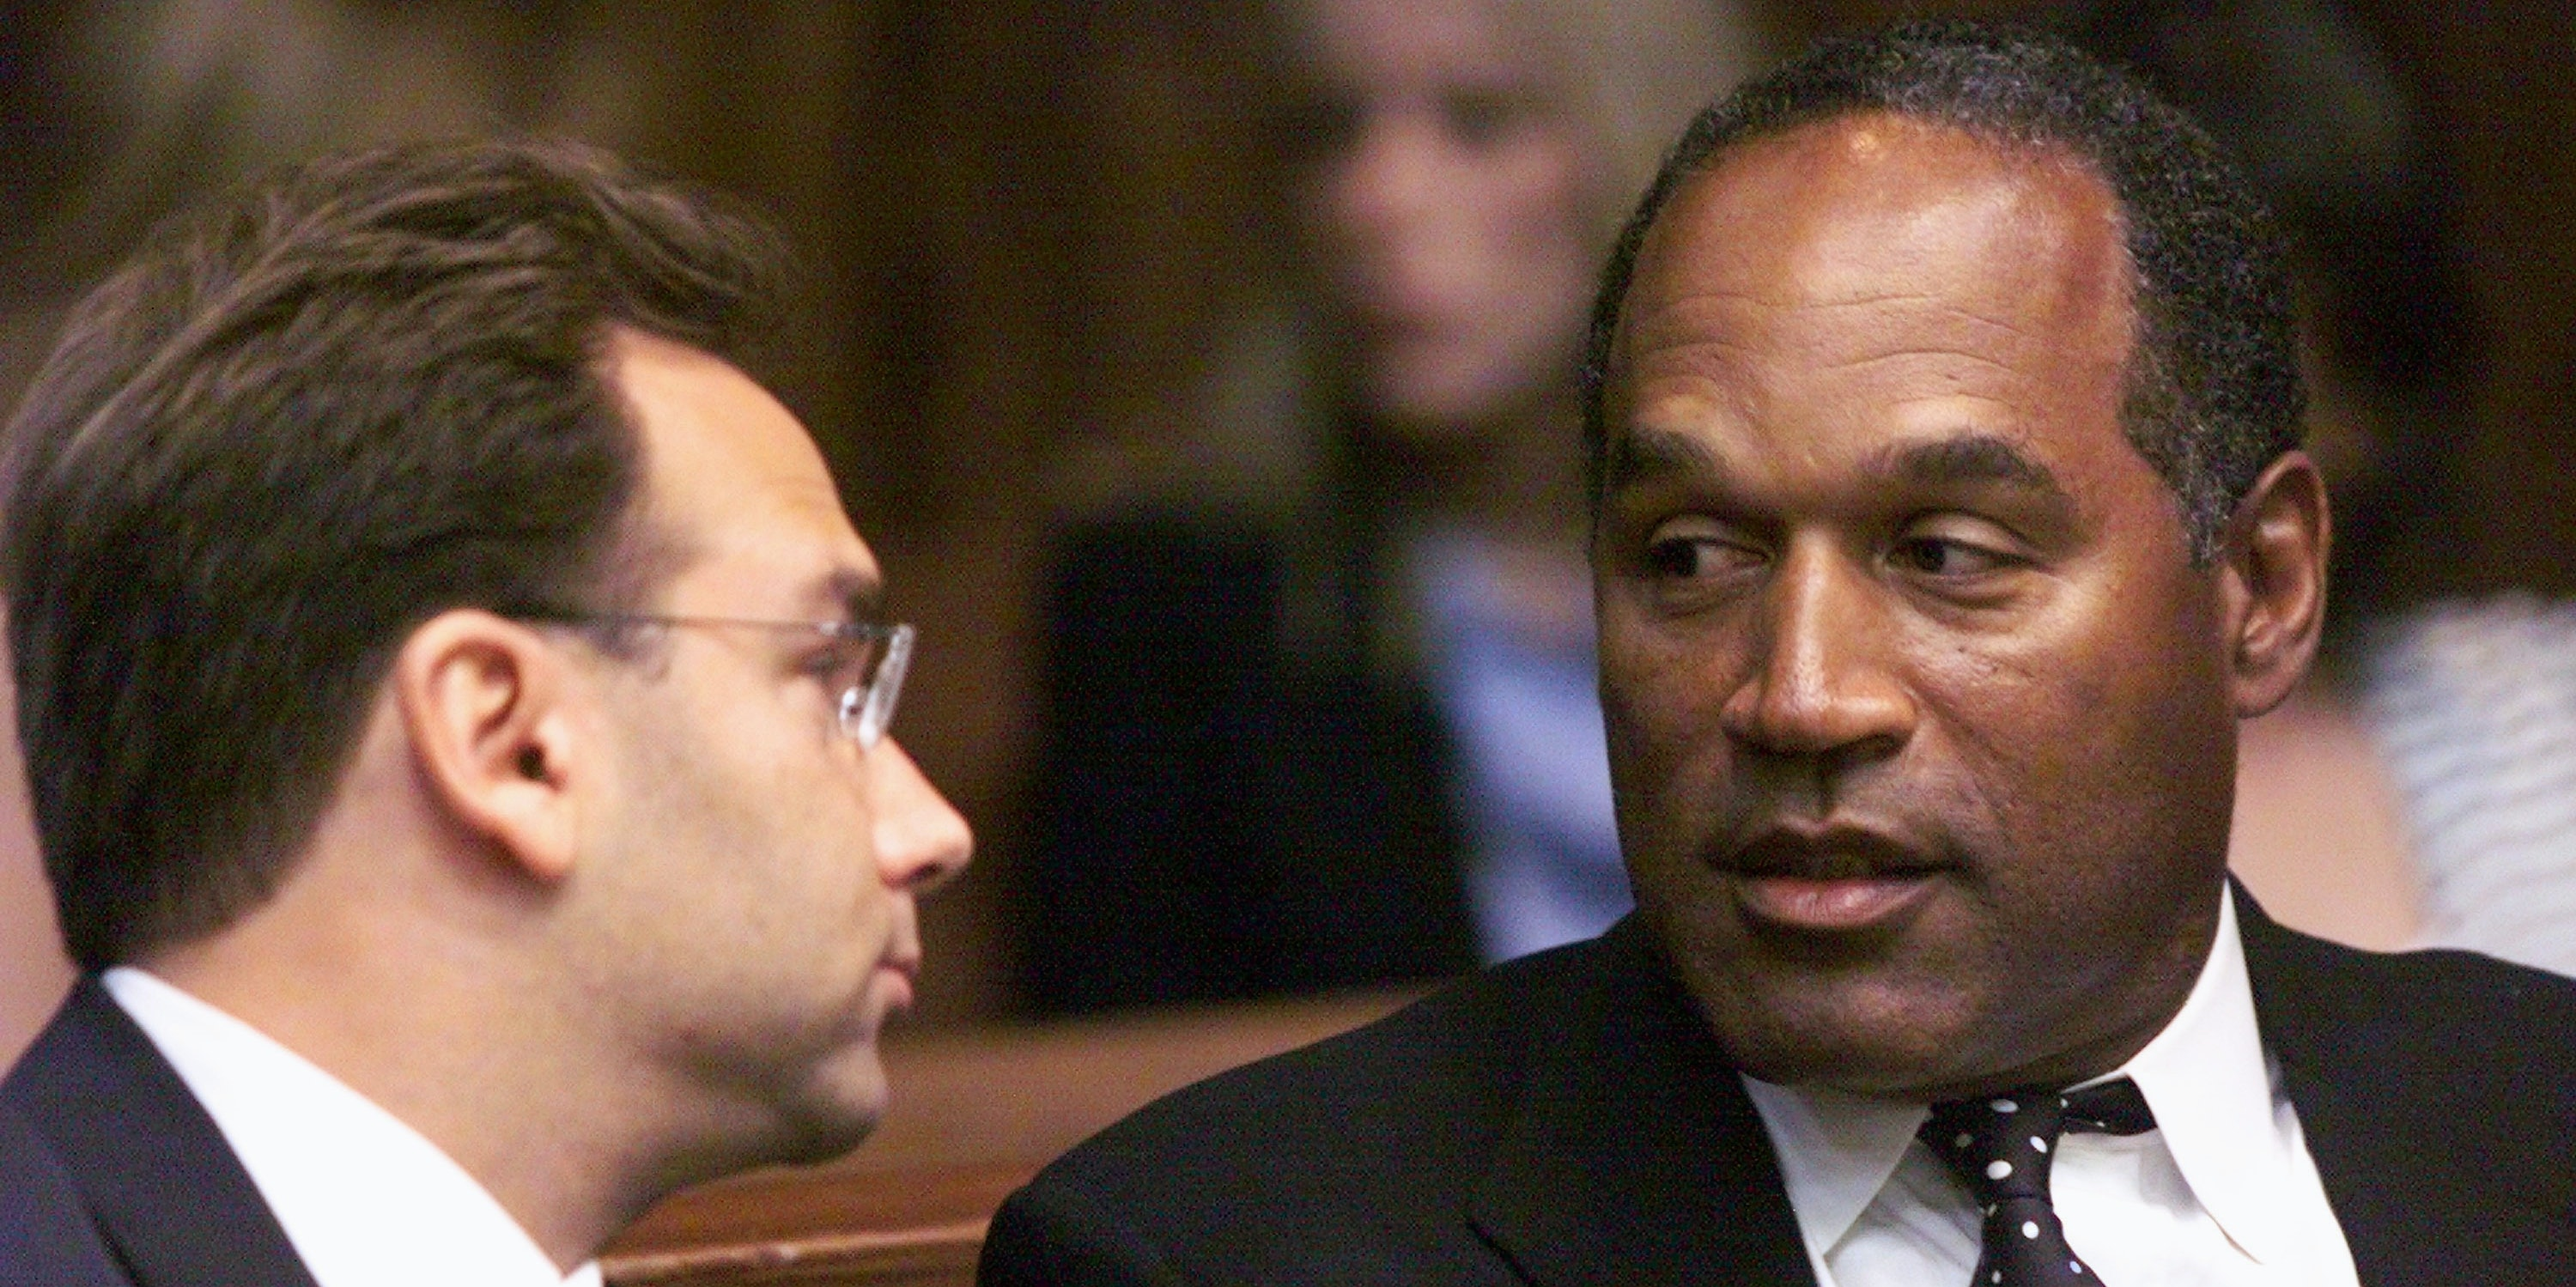 What If O.J. Simpson Was a Close Friend of the Family? He Was for Me.